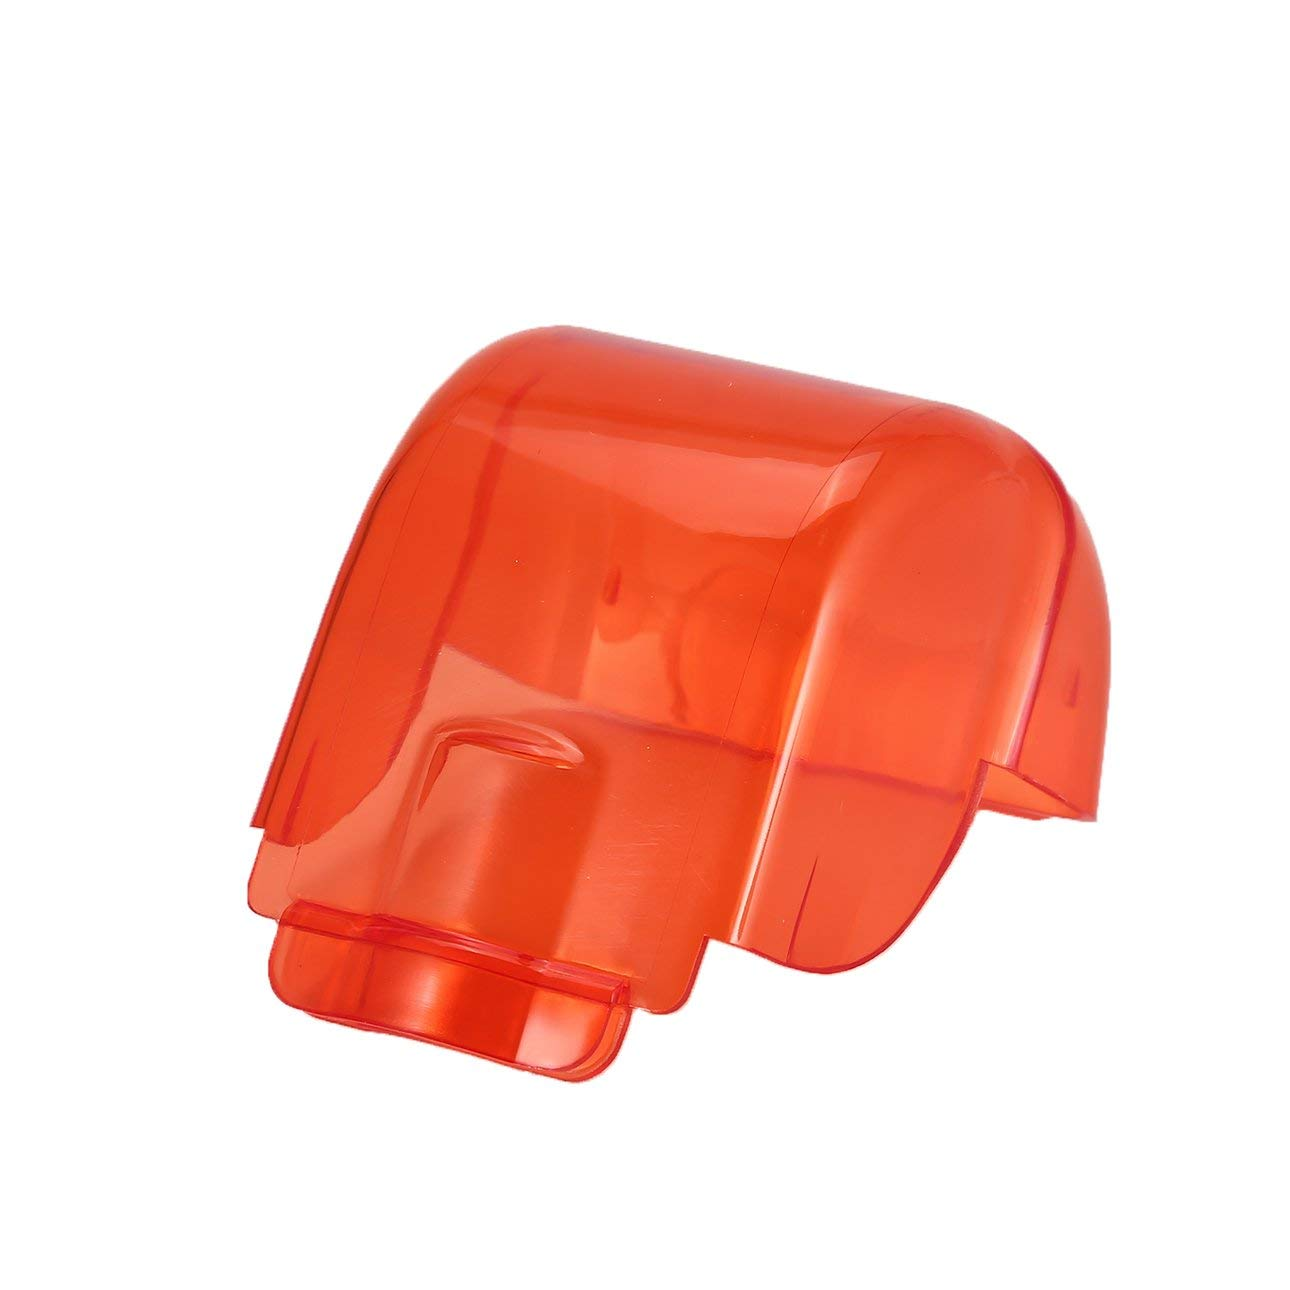 Liobaba Camera Gimbal Cover Cap Anti-Hump Protective Cover Protector Protection for DJI Spark Drone Accessories Parts Anti-Scratch red